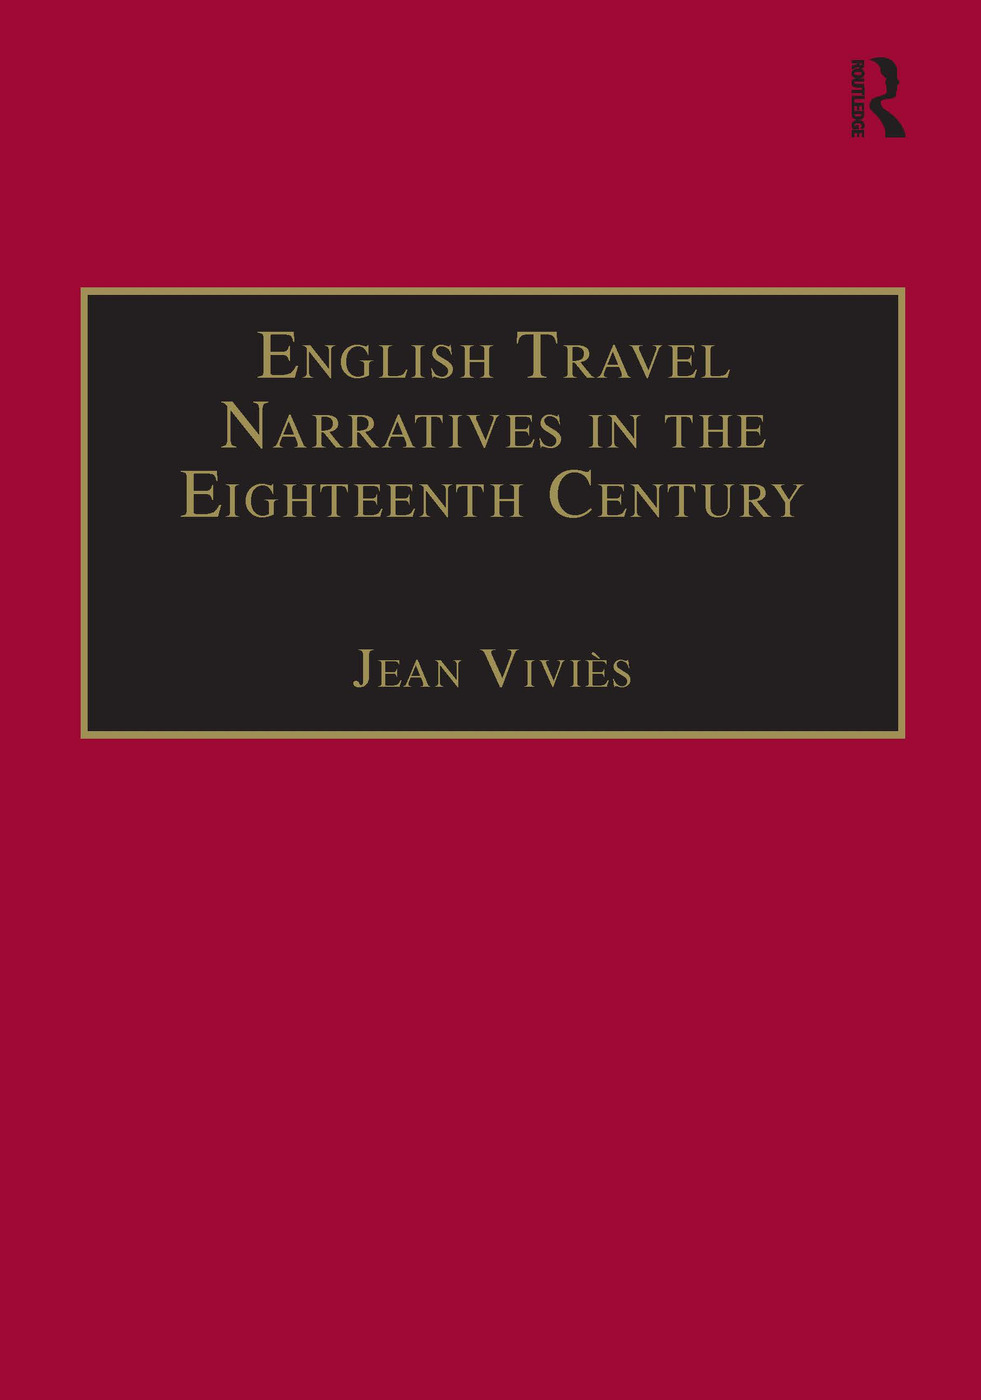 English Travel Narratives in the Eighteenth Century: Exploring Genres book cover